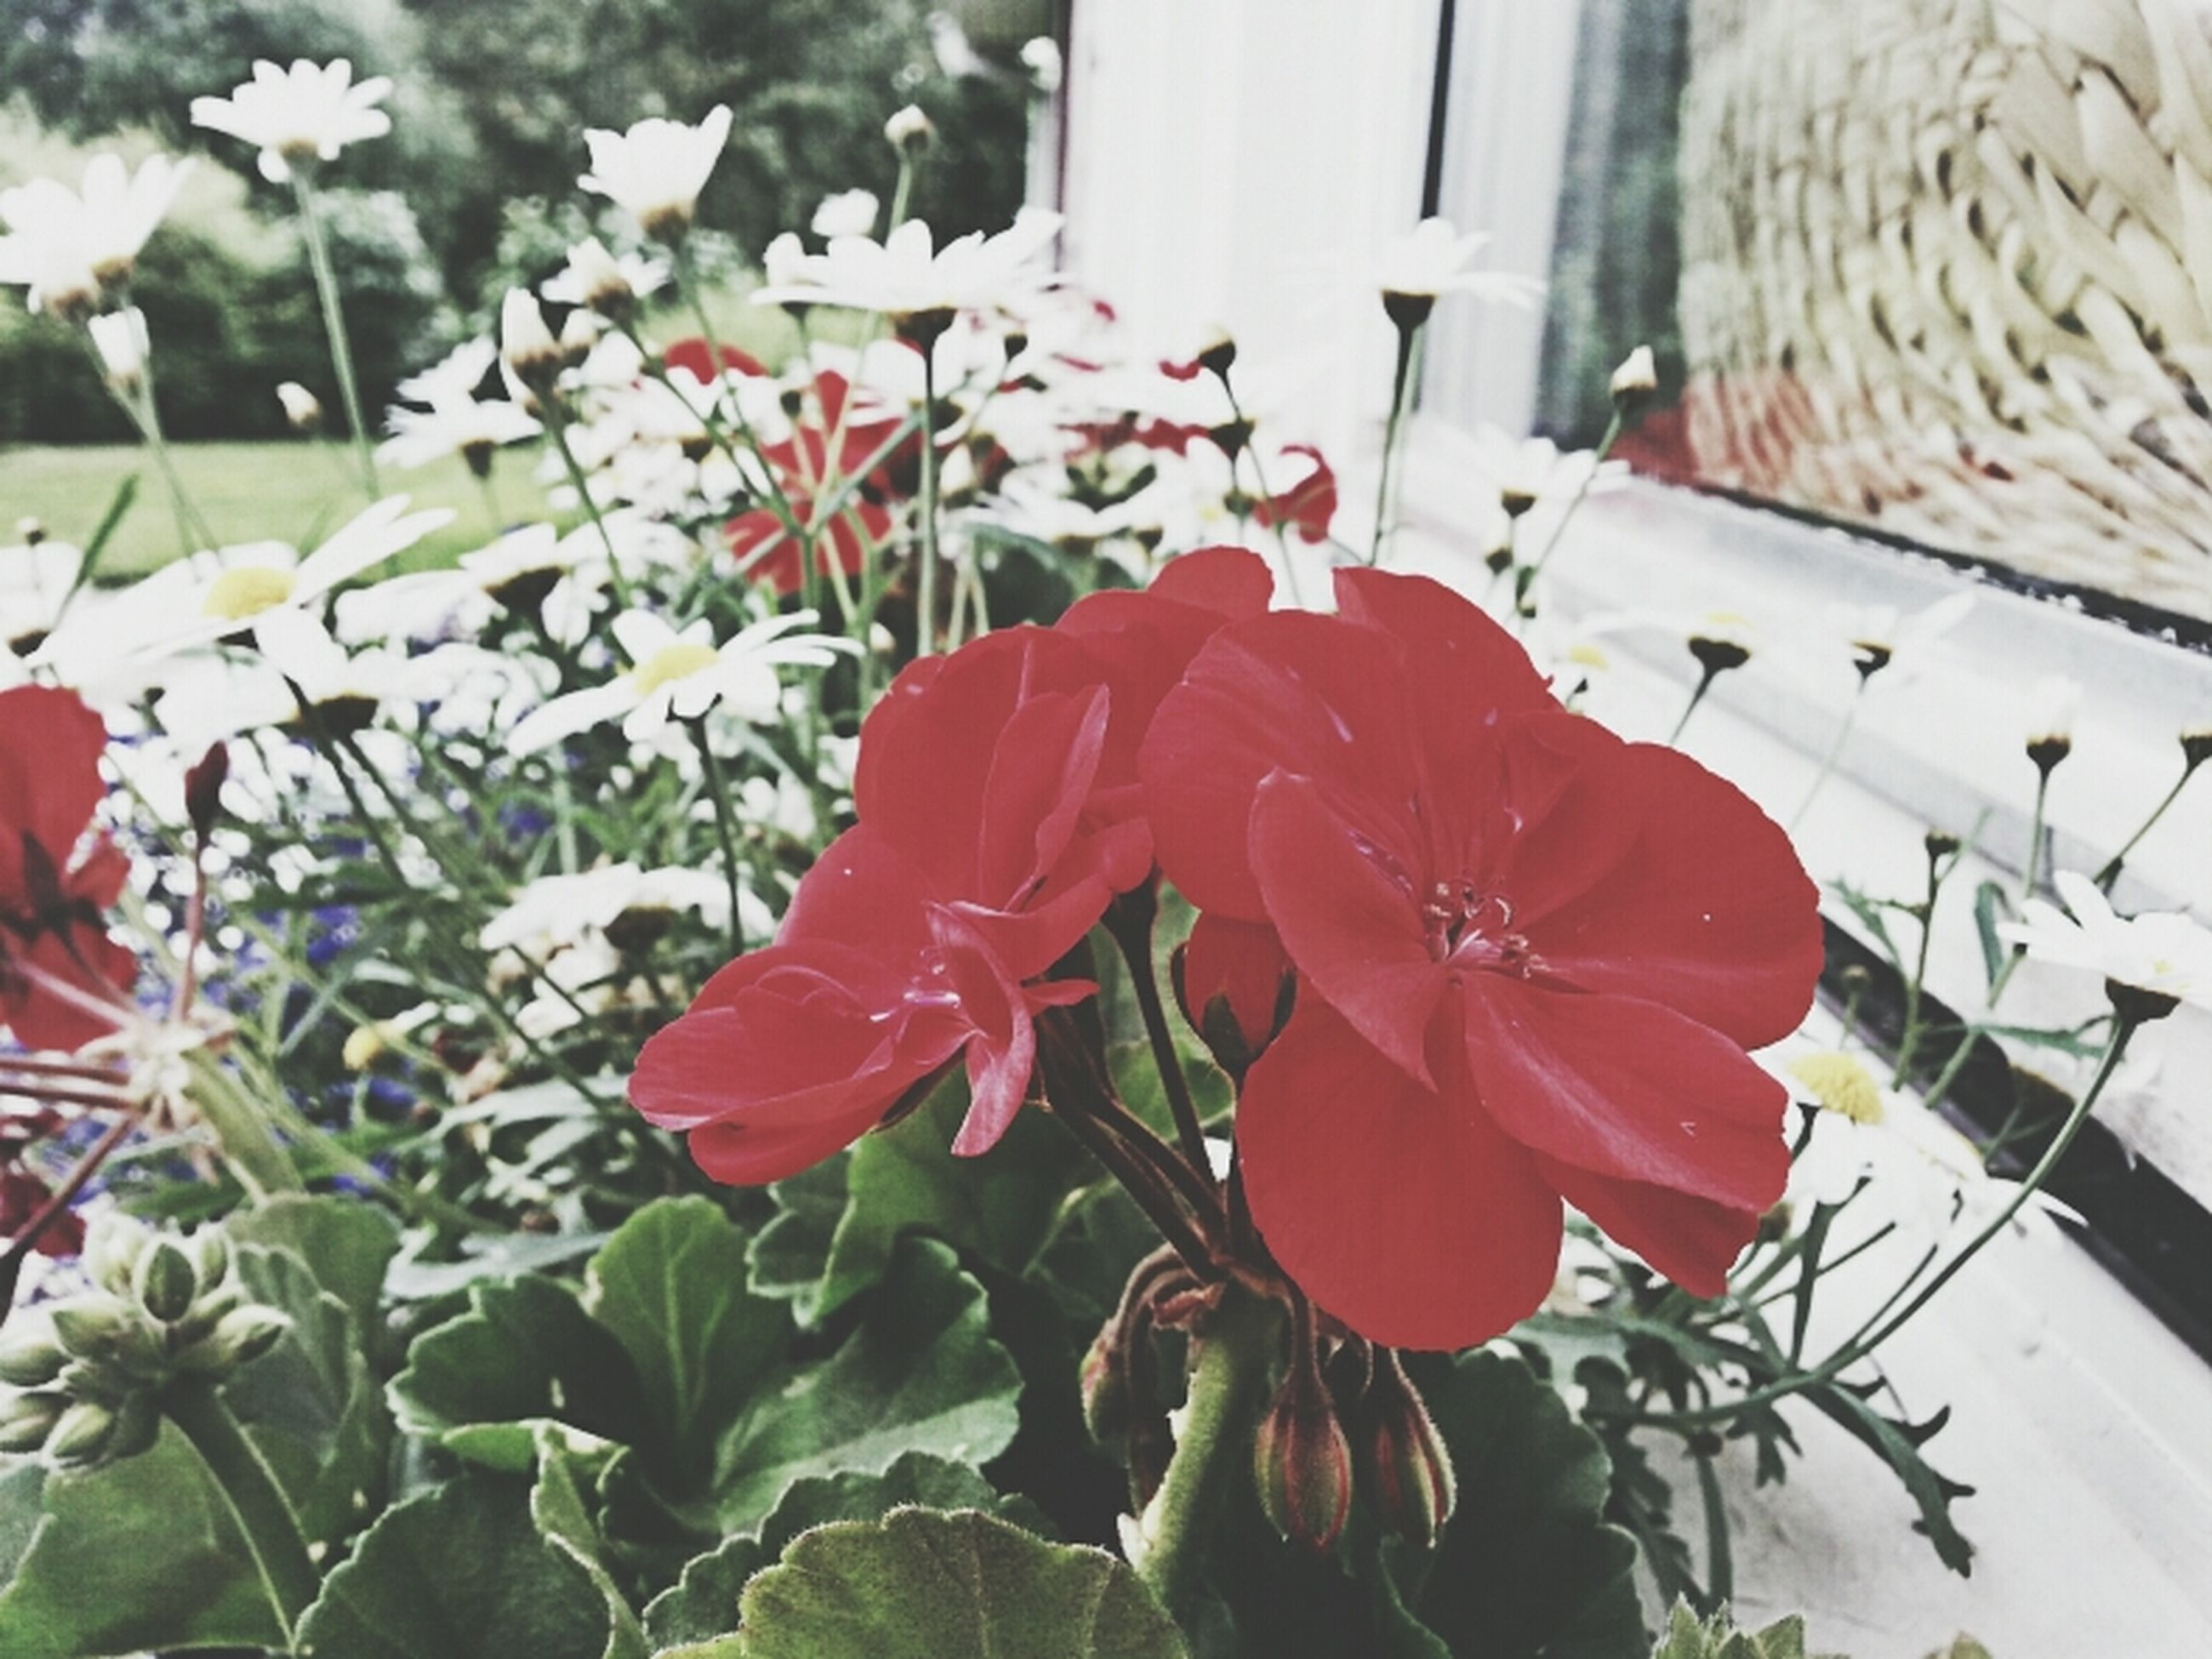 flower, petal, flower head, fragility, plant, freshness, growth, potted plant, beauty in nature, red, blooming, nature, close-up, leaf, day, focus on foreground, no people, front or back yard, in bloom, outdoors